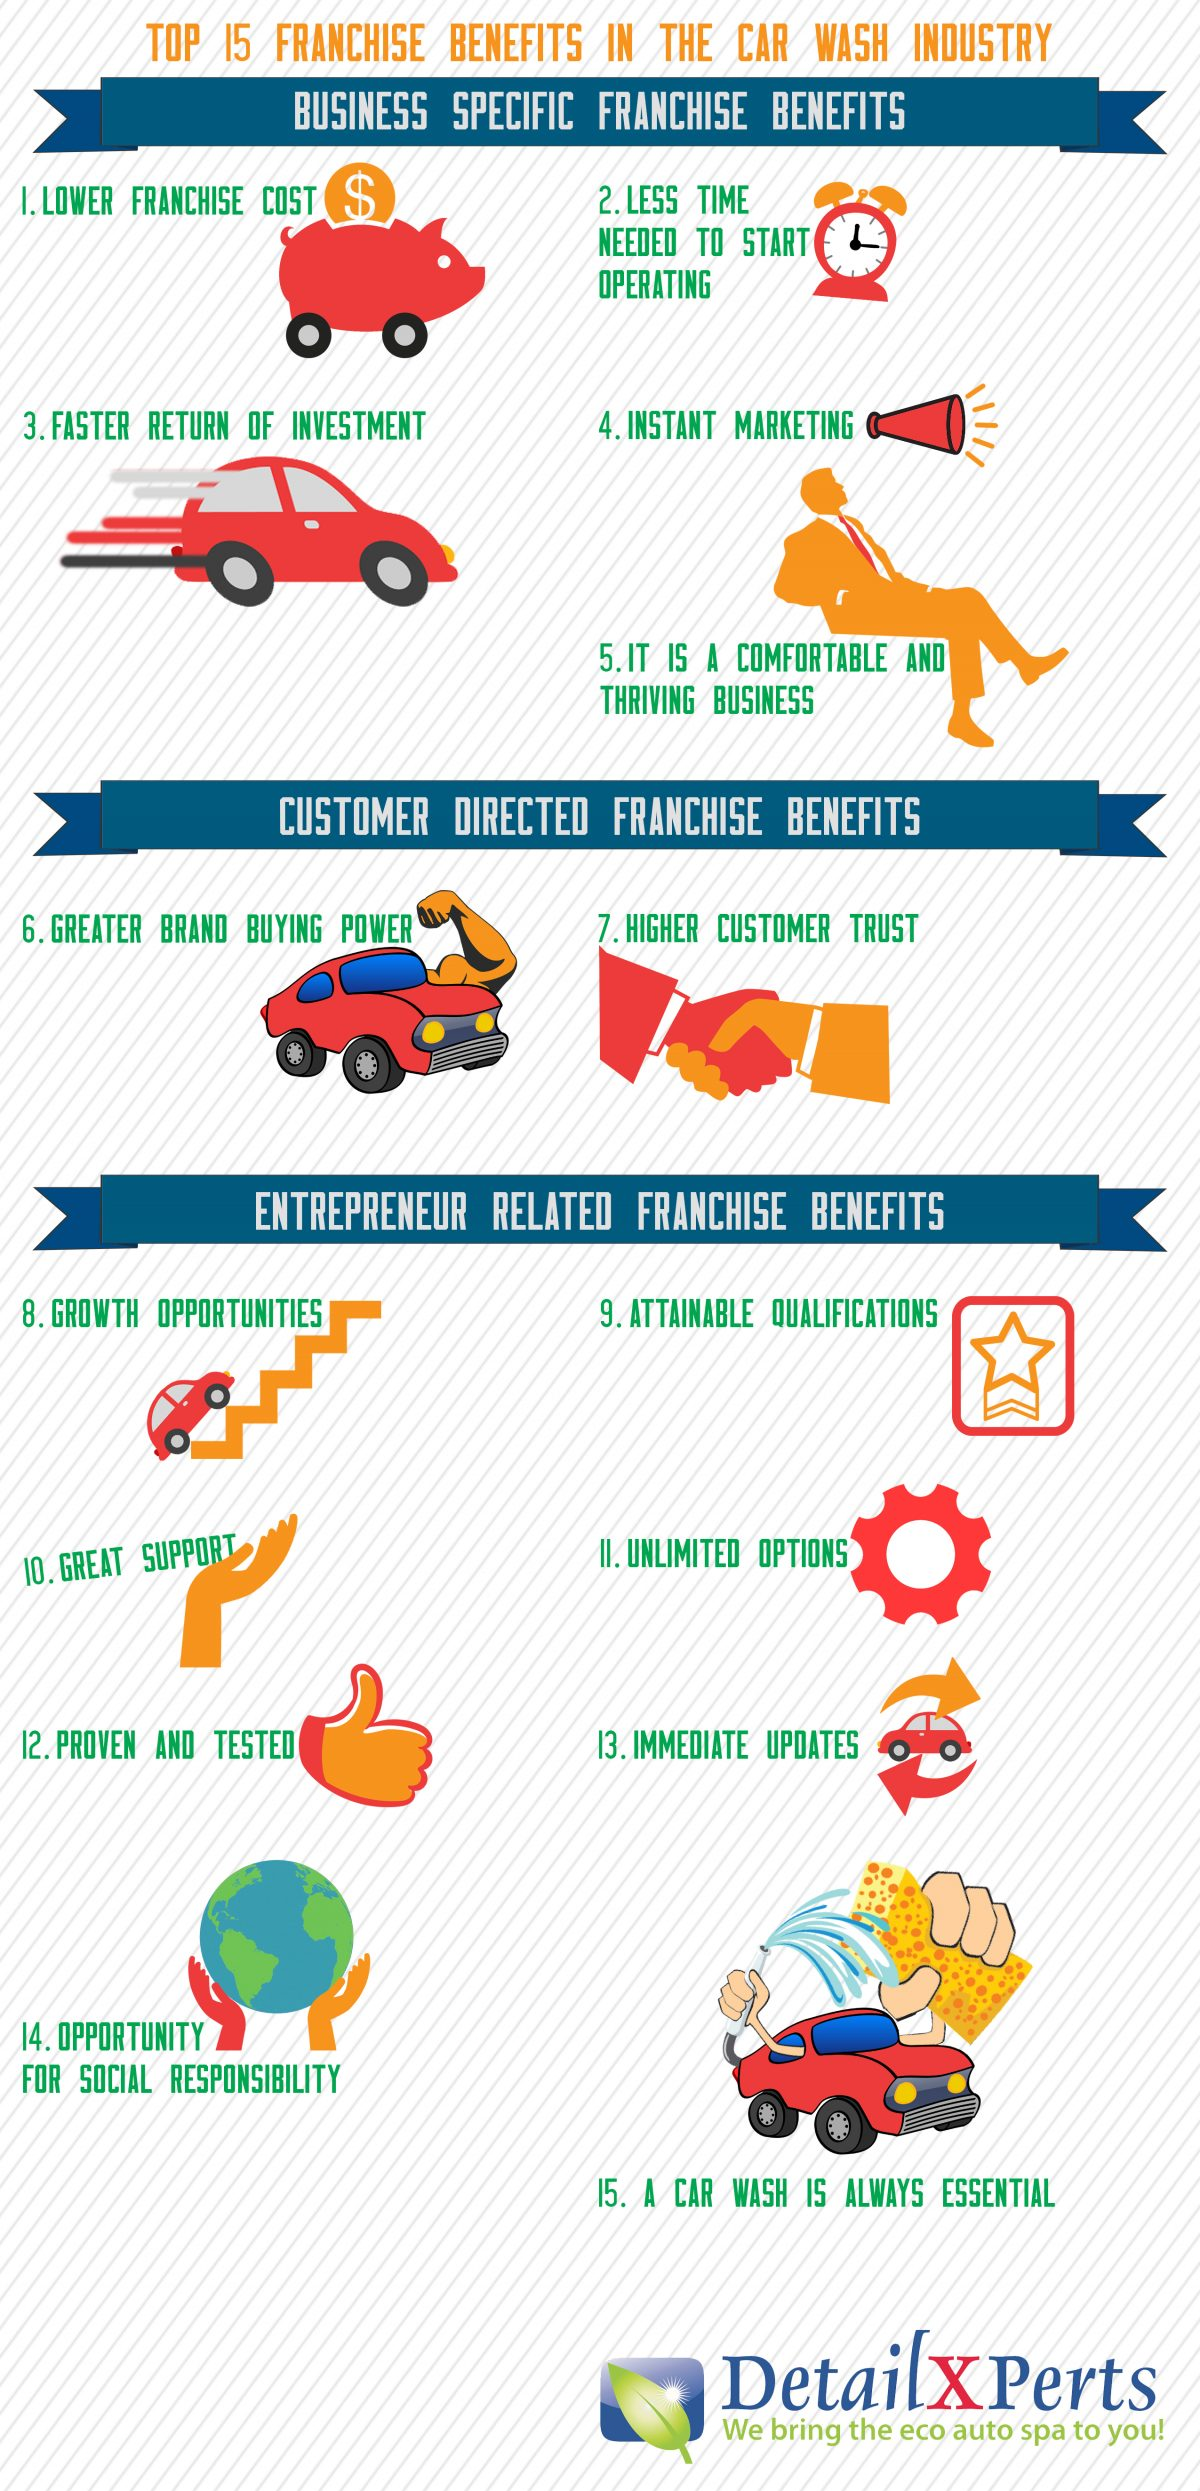 Top 15 Franchise Benefits in the Car Wash Industry